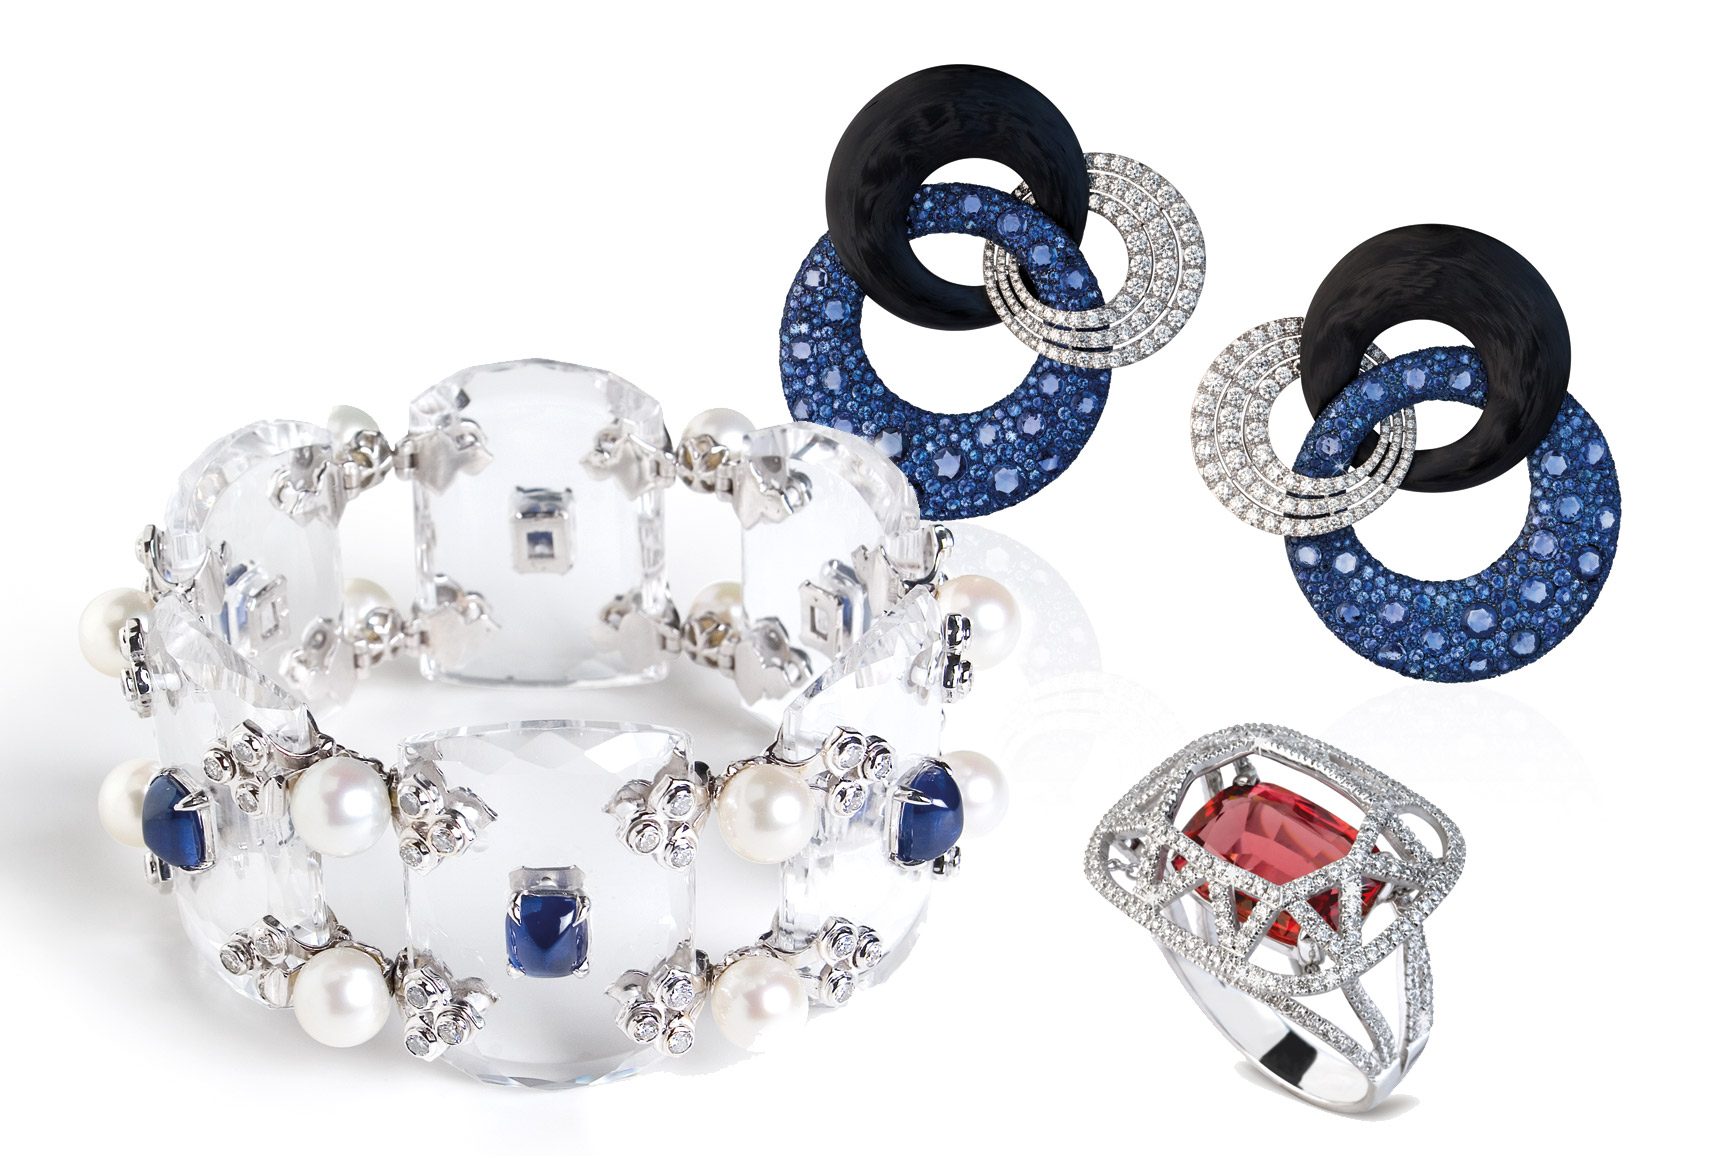 Fabio Salini 'Crystal' bracelet in rock crystal, blue sapphires, pearls and diamonds. Earrings in gold, titanium, carbon fibre, sapphires, and diamonds. 'Cage' ring in peach spinel, diamonds and gold